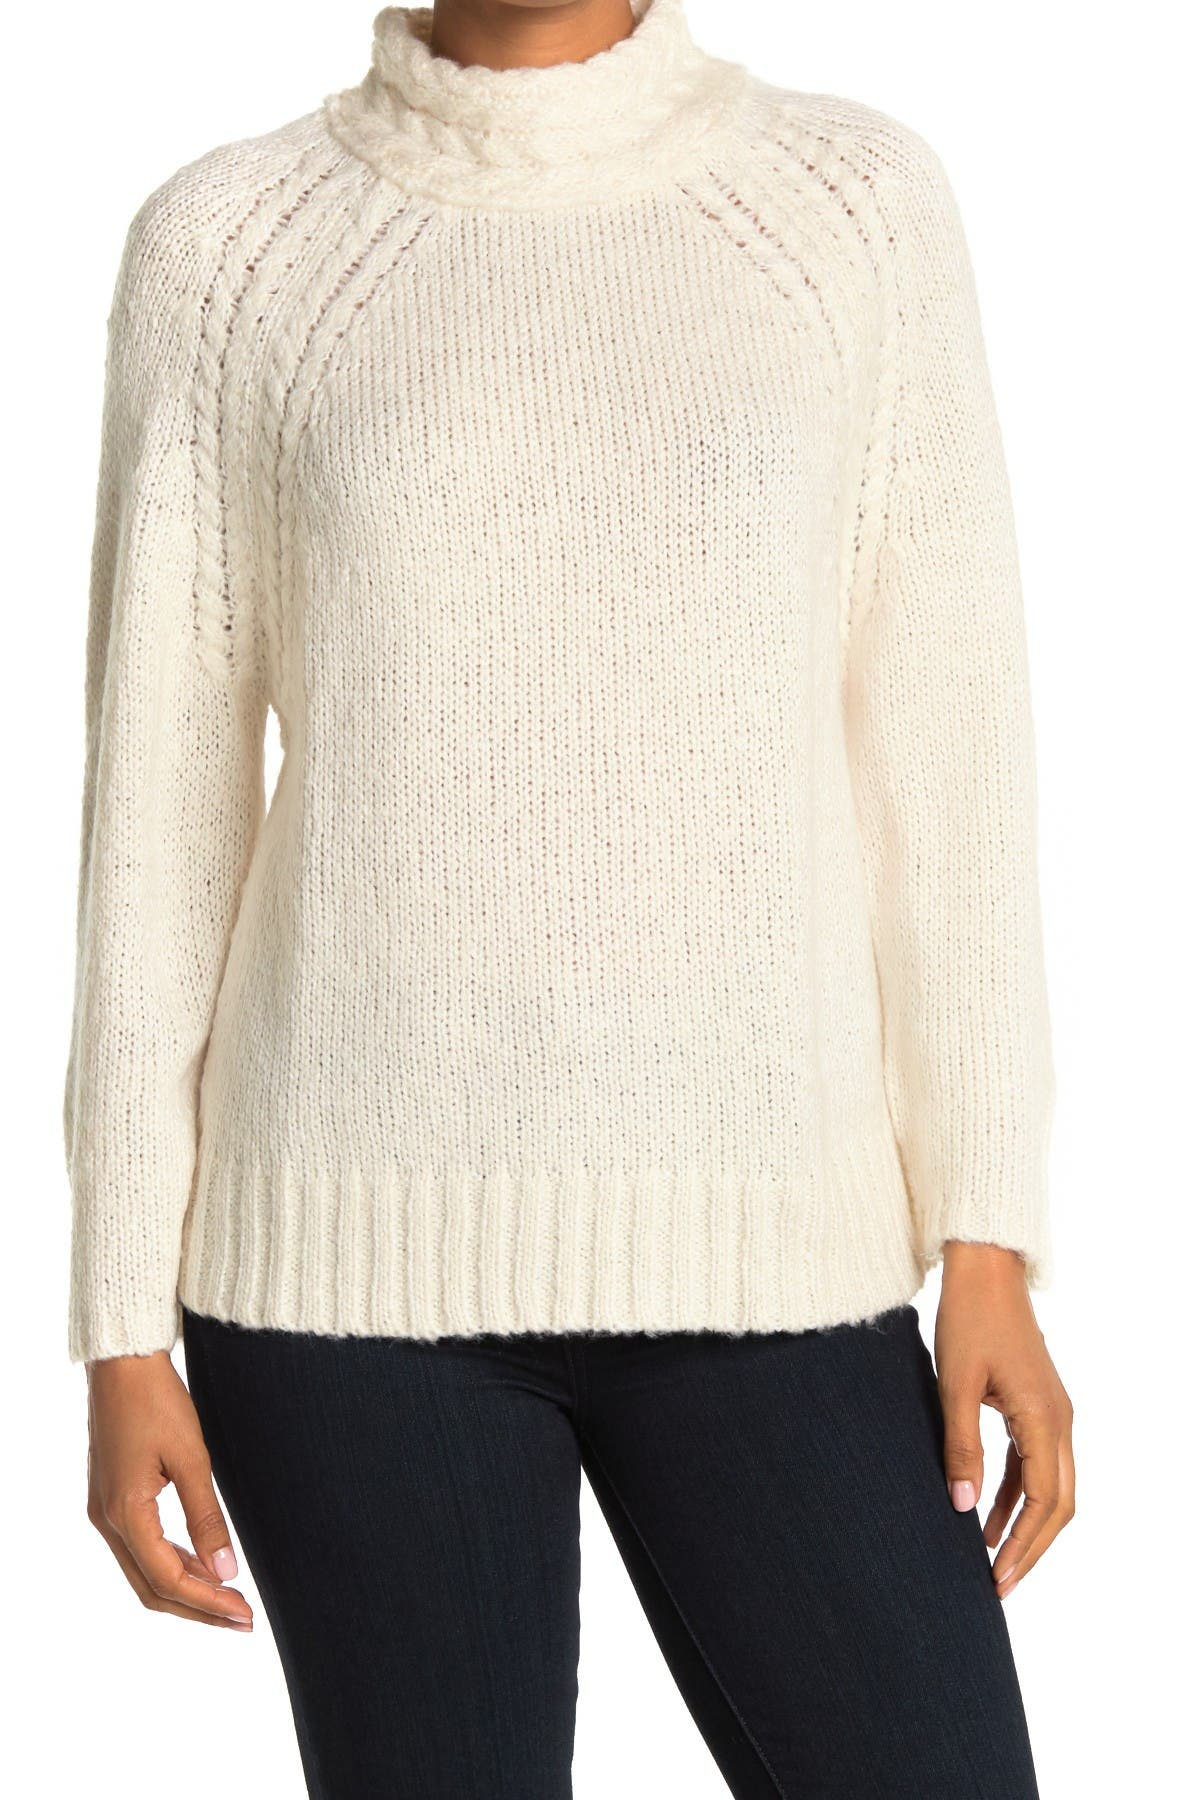 Image of Ceny Cable Mock Neck Raglan Pullover Sweater